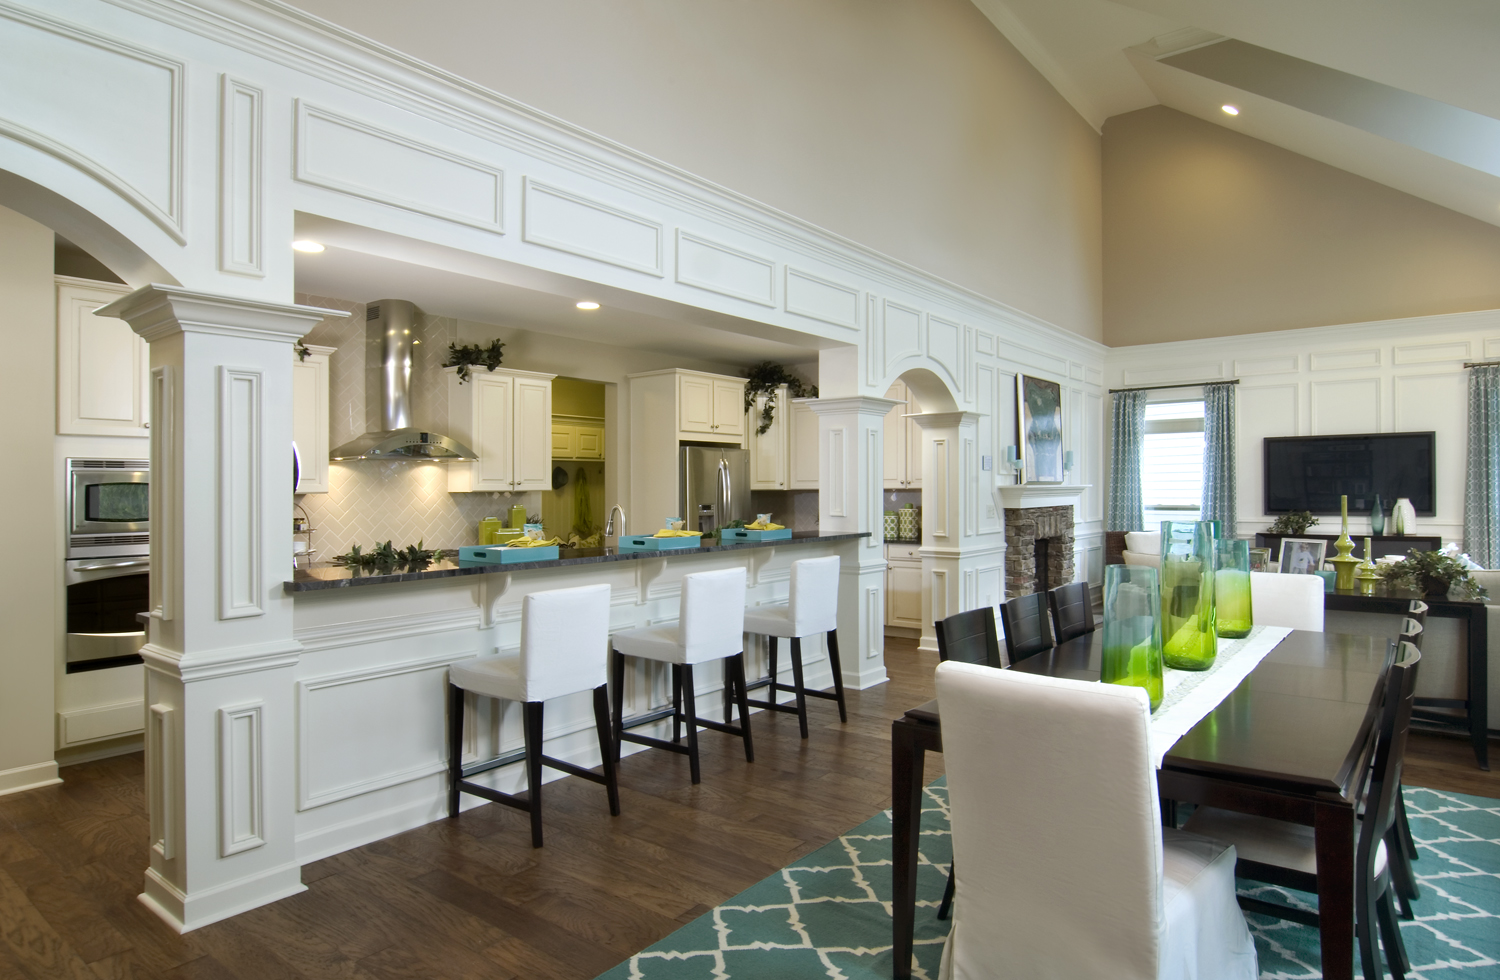 Shea homes opens new model home in winding walk for Model home kitchens